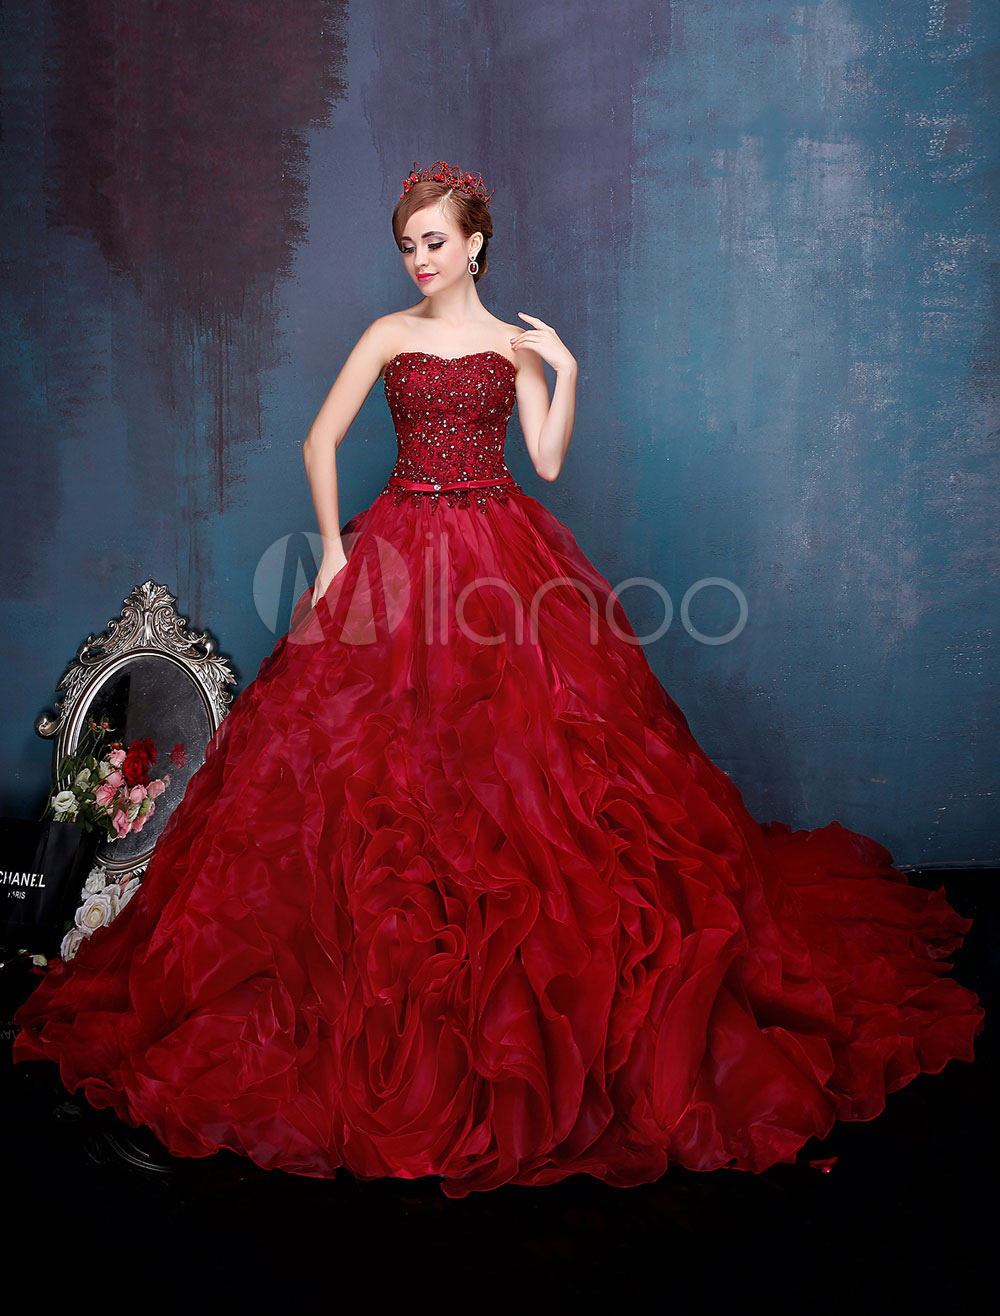 49b33ee15b1 ... Princess Quinceanera Dresses Luxury Burgundy Long Train Princess  Pageant Dress-No.3 ...